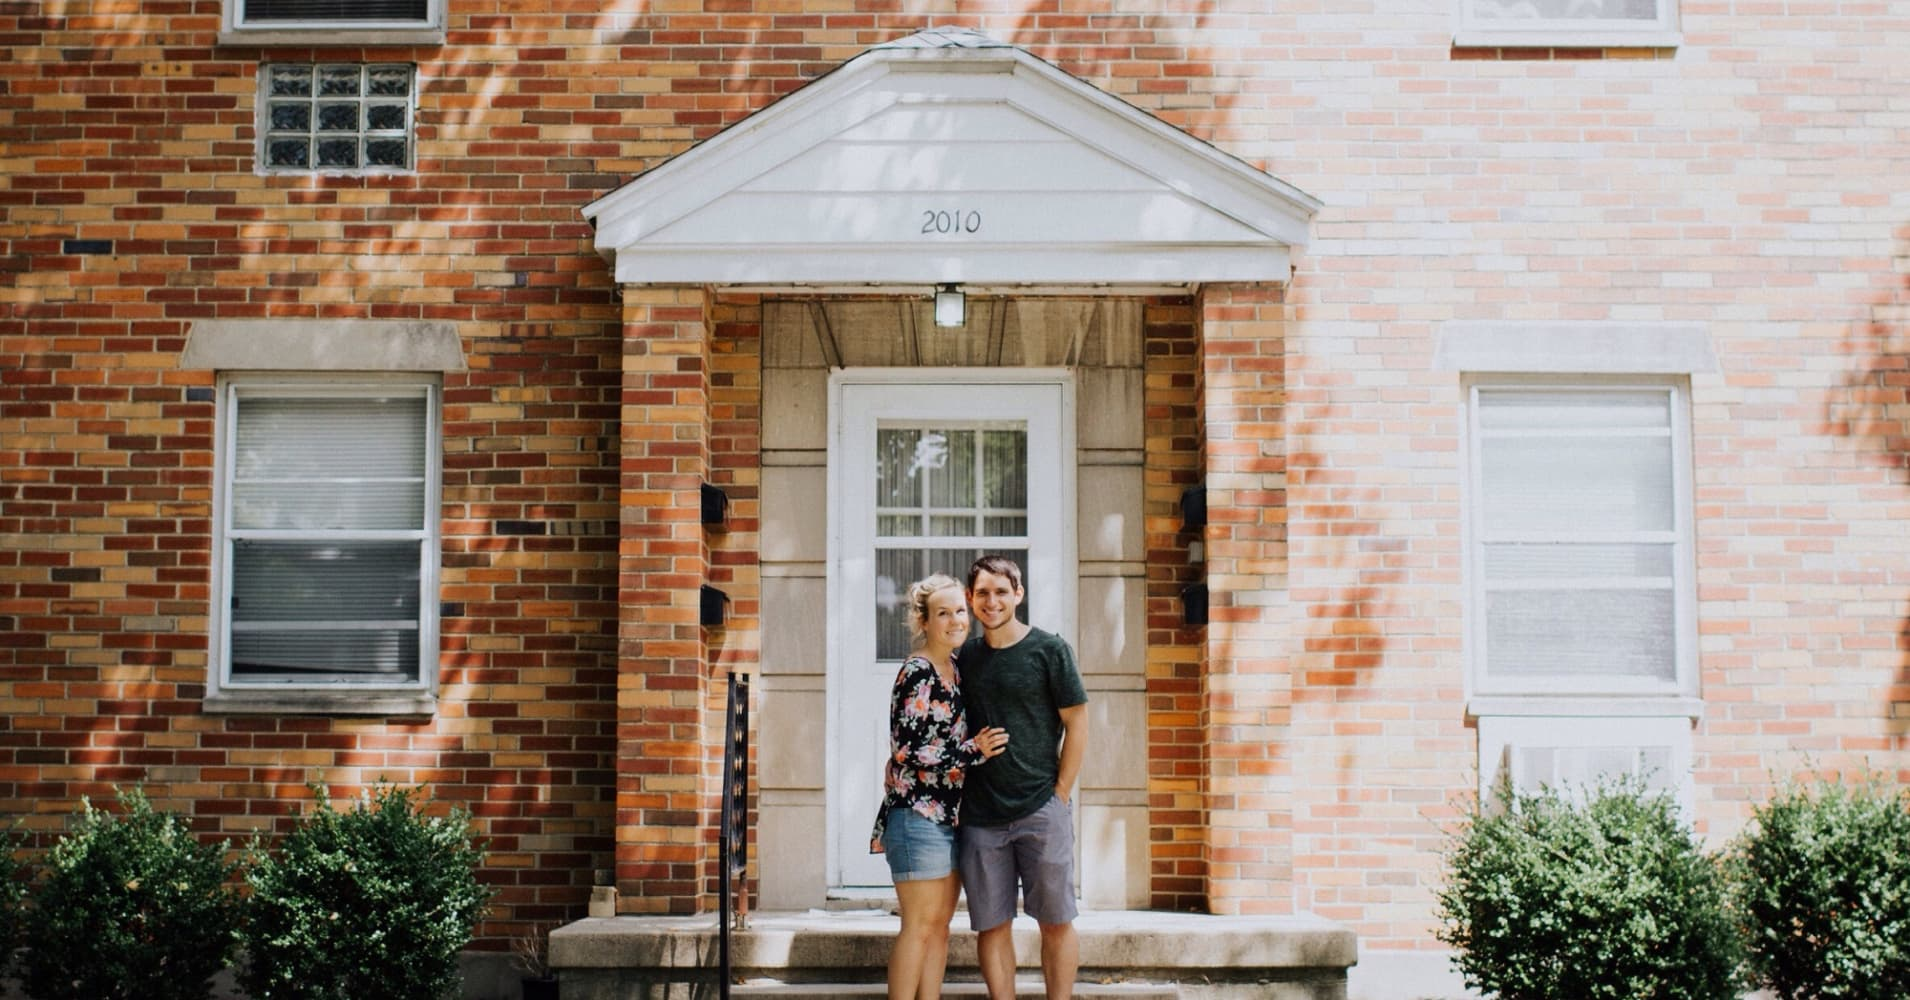 A couple pose in front of a house.